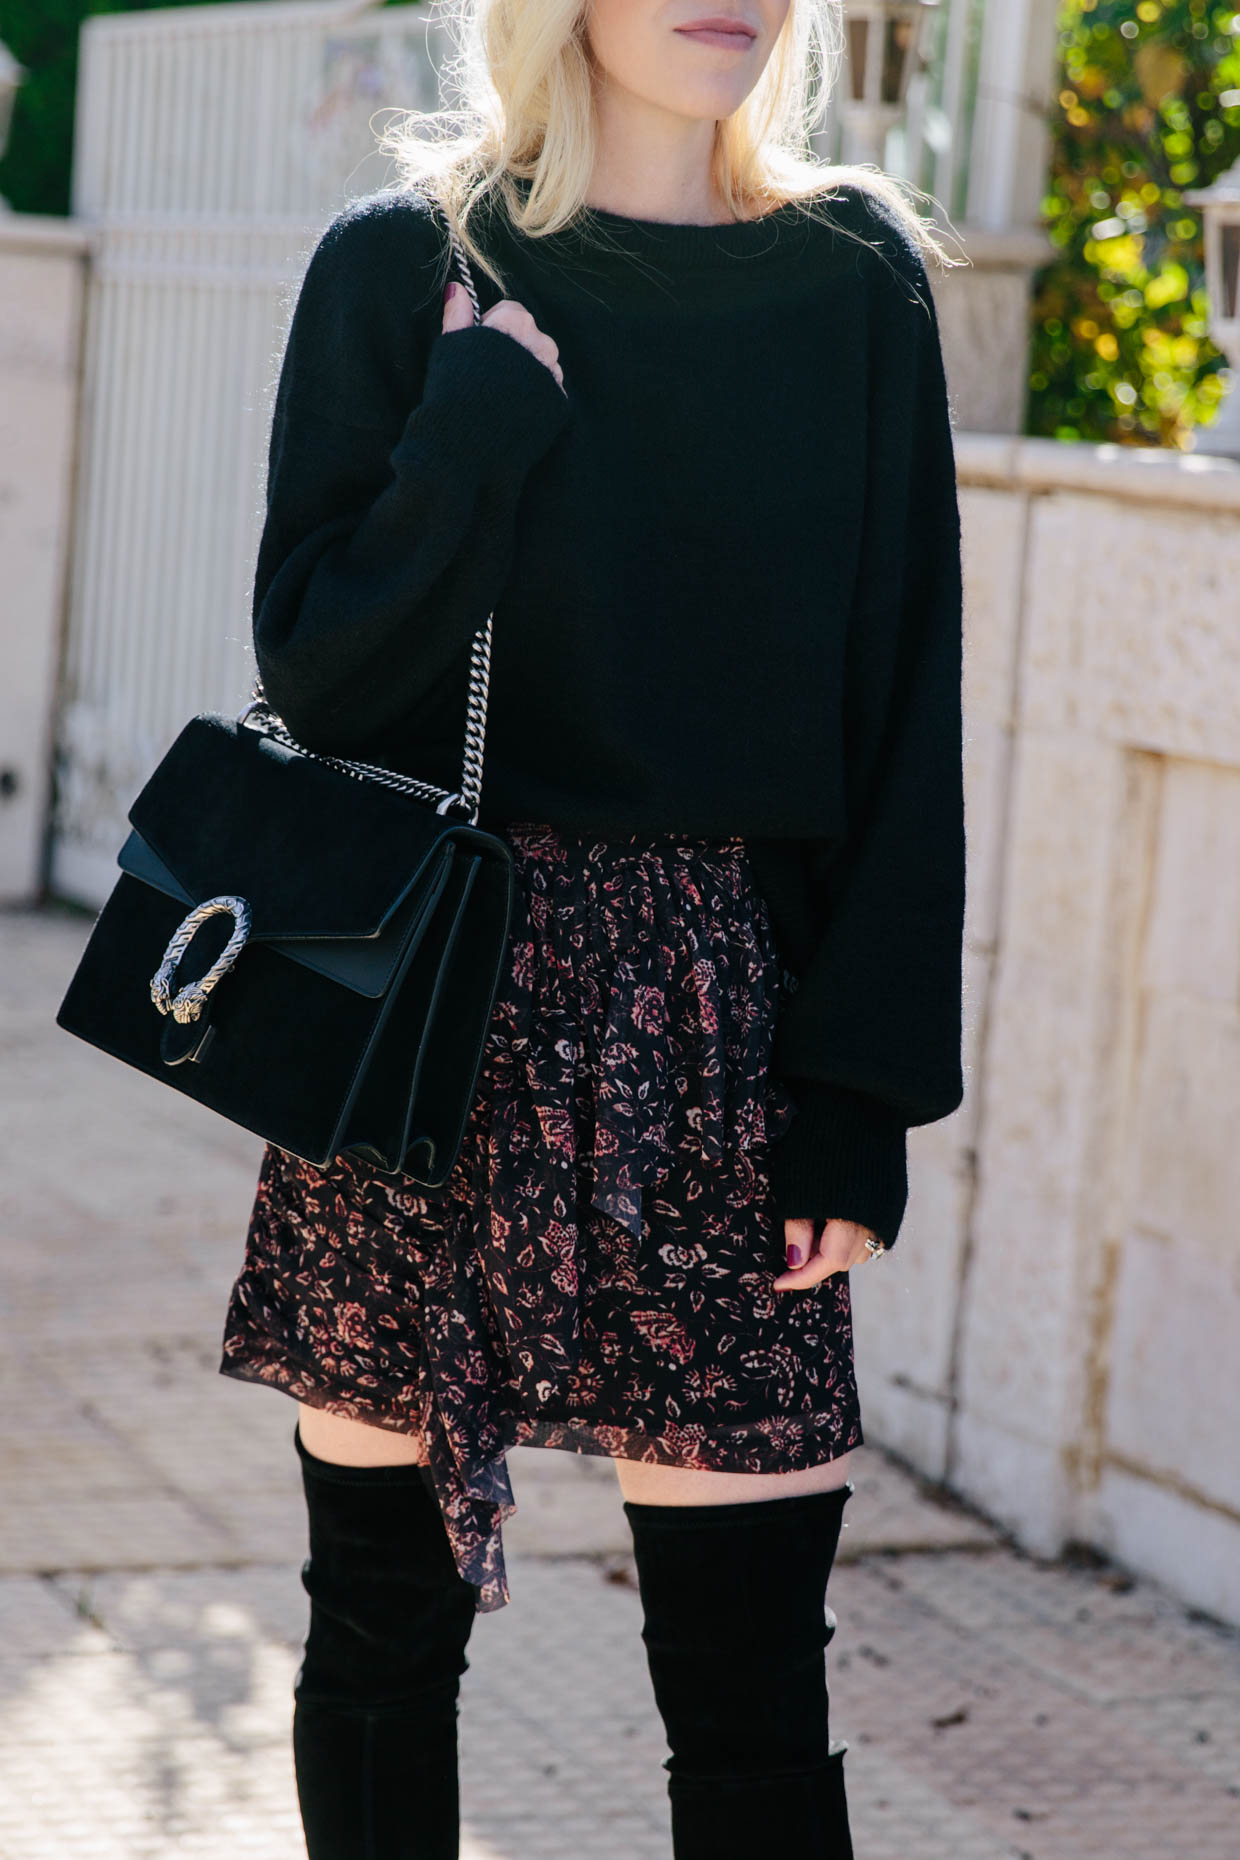 32c61ed0075 Meagan Brandon fashion blogger of Meagan s Moda wears oversized black  sweater with floral ruffle mini skirt and suede over the knee boots for  fall